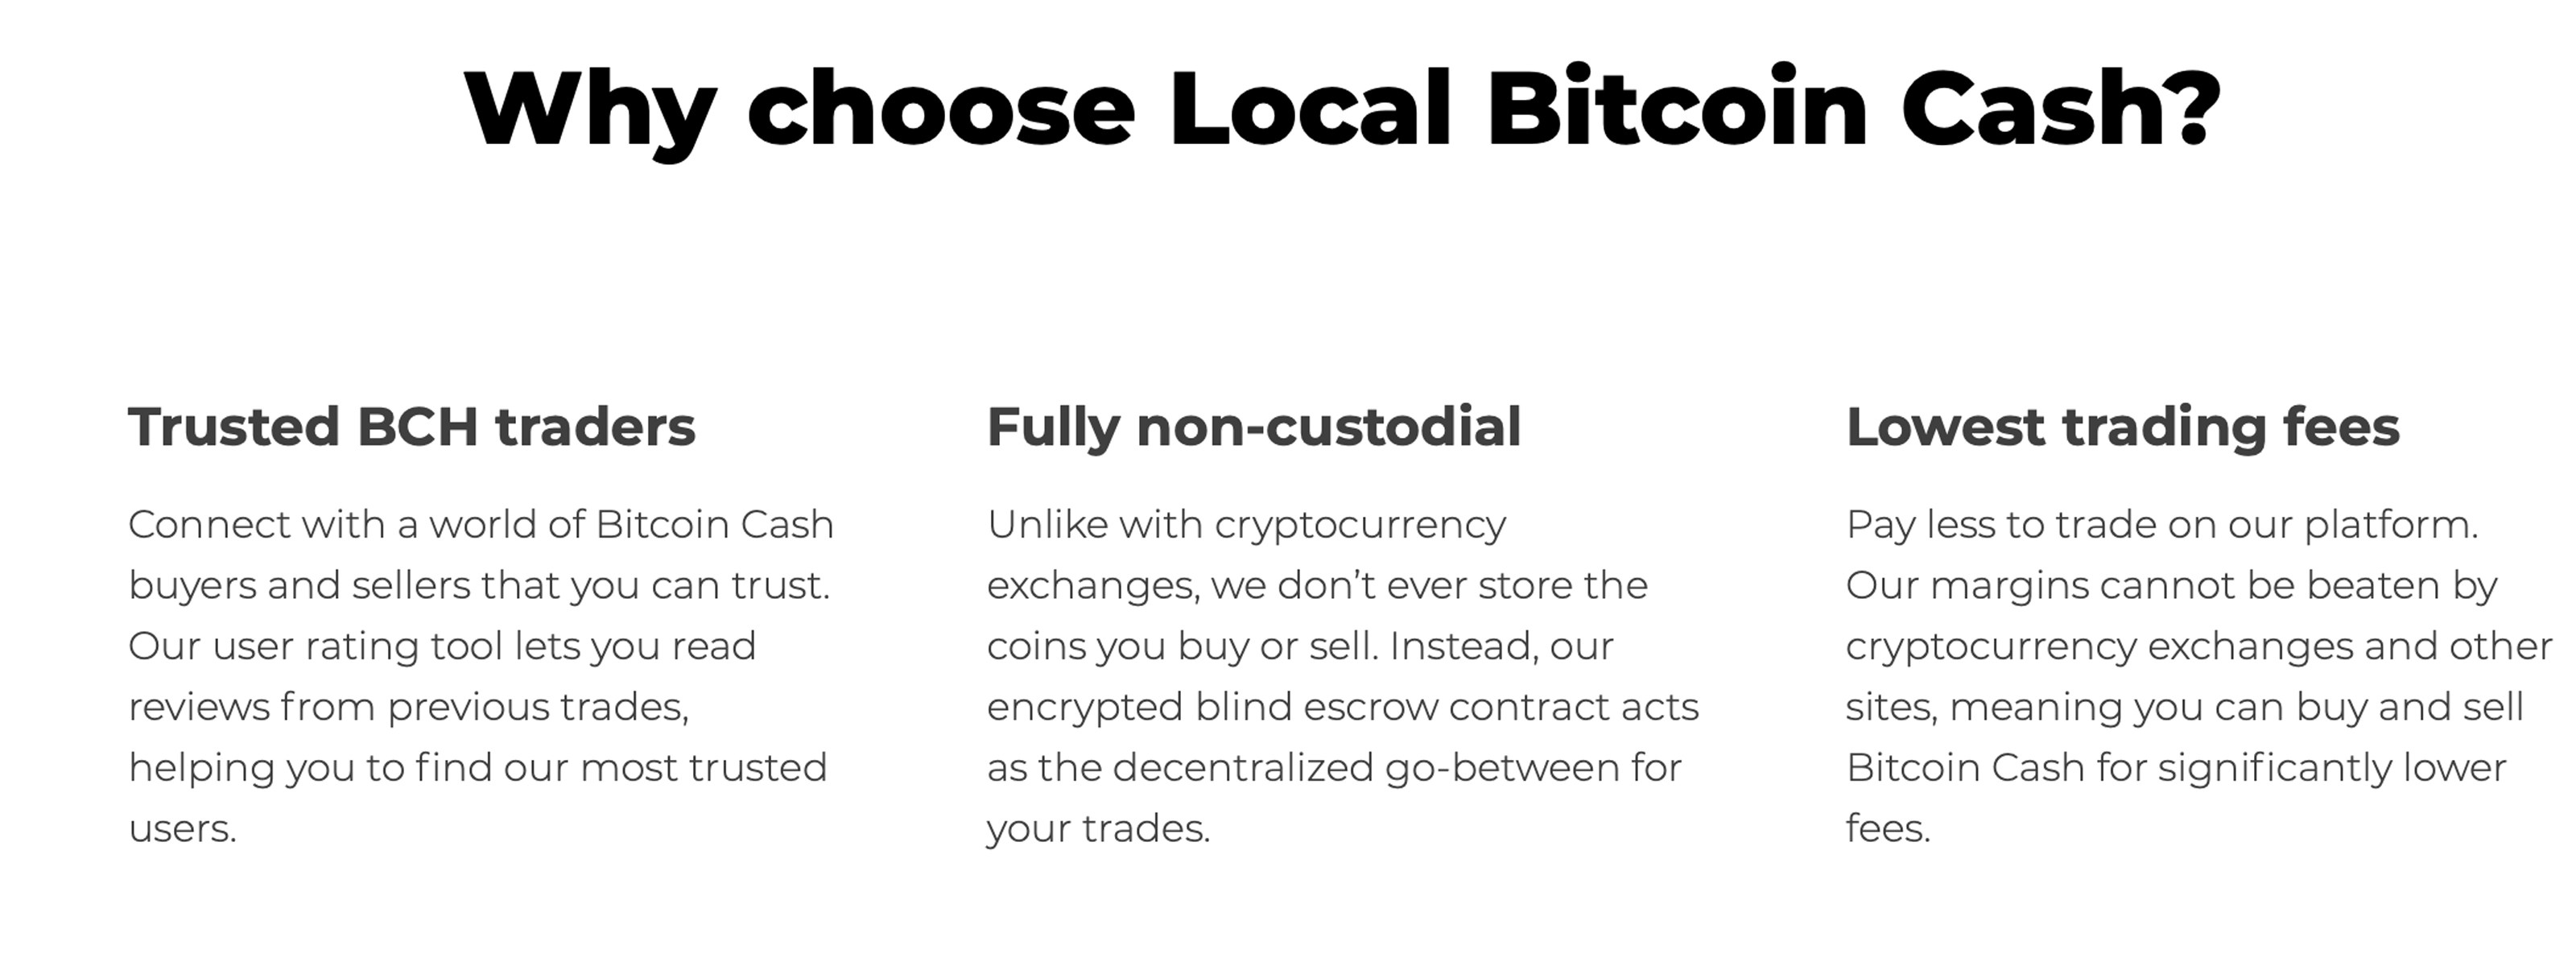 Bitcoin.com's Local Bitcoin Cash Marketplace Gathers Thousands of Pre-Launch Signups